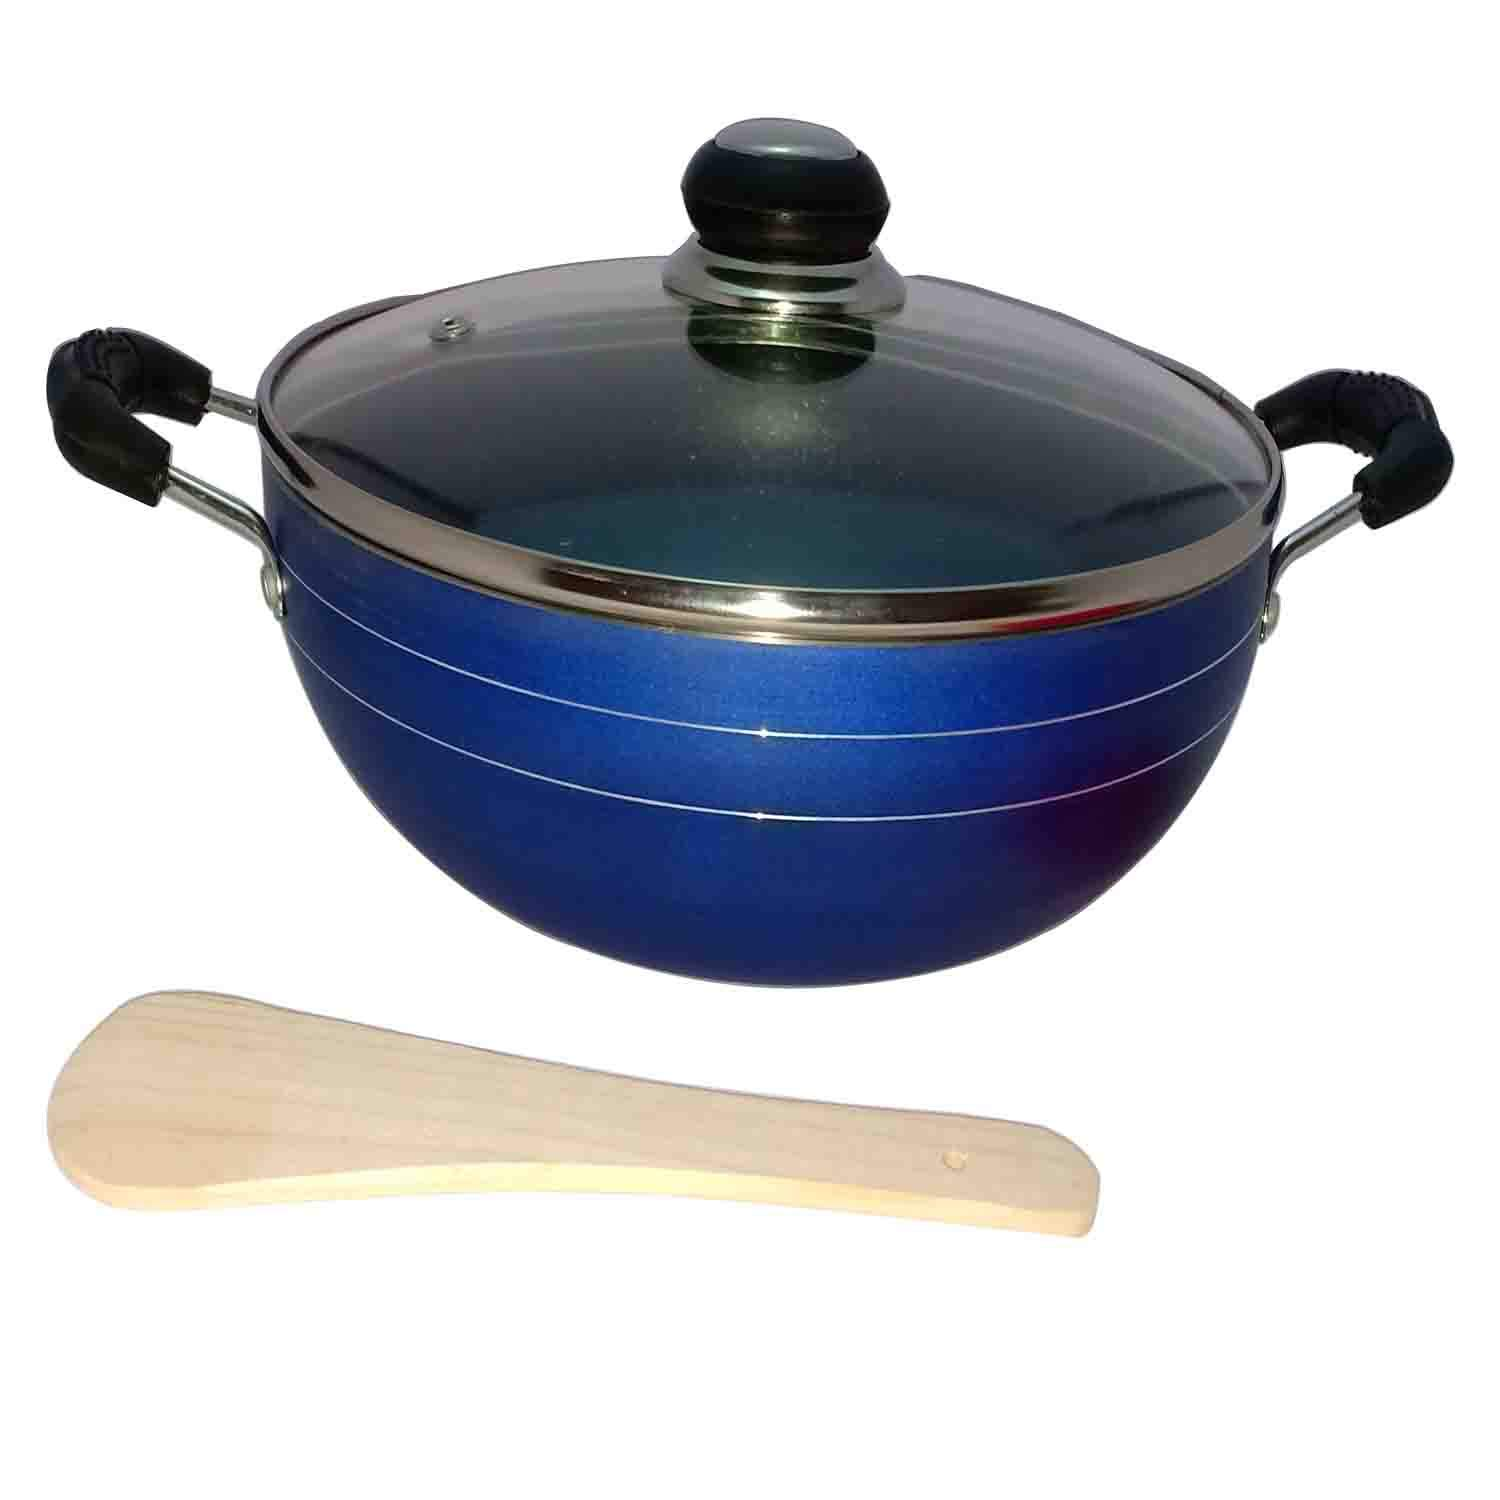 Hard Anodized Deep Kadai Non-Stick Aluminium Kadhai Deep Fry Pan Nonstick 2.2 Litre Kadhai with Glass Lid 240 mm (Induction and Gas Compatible) by GD (Image #7)